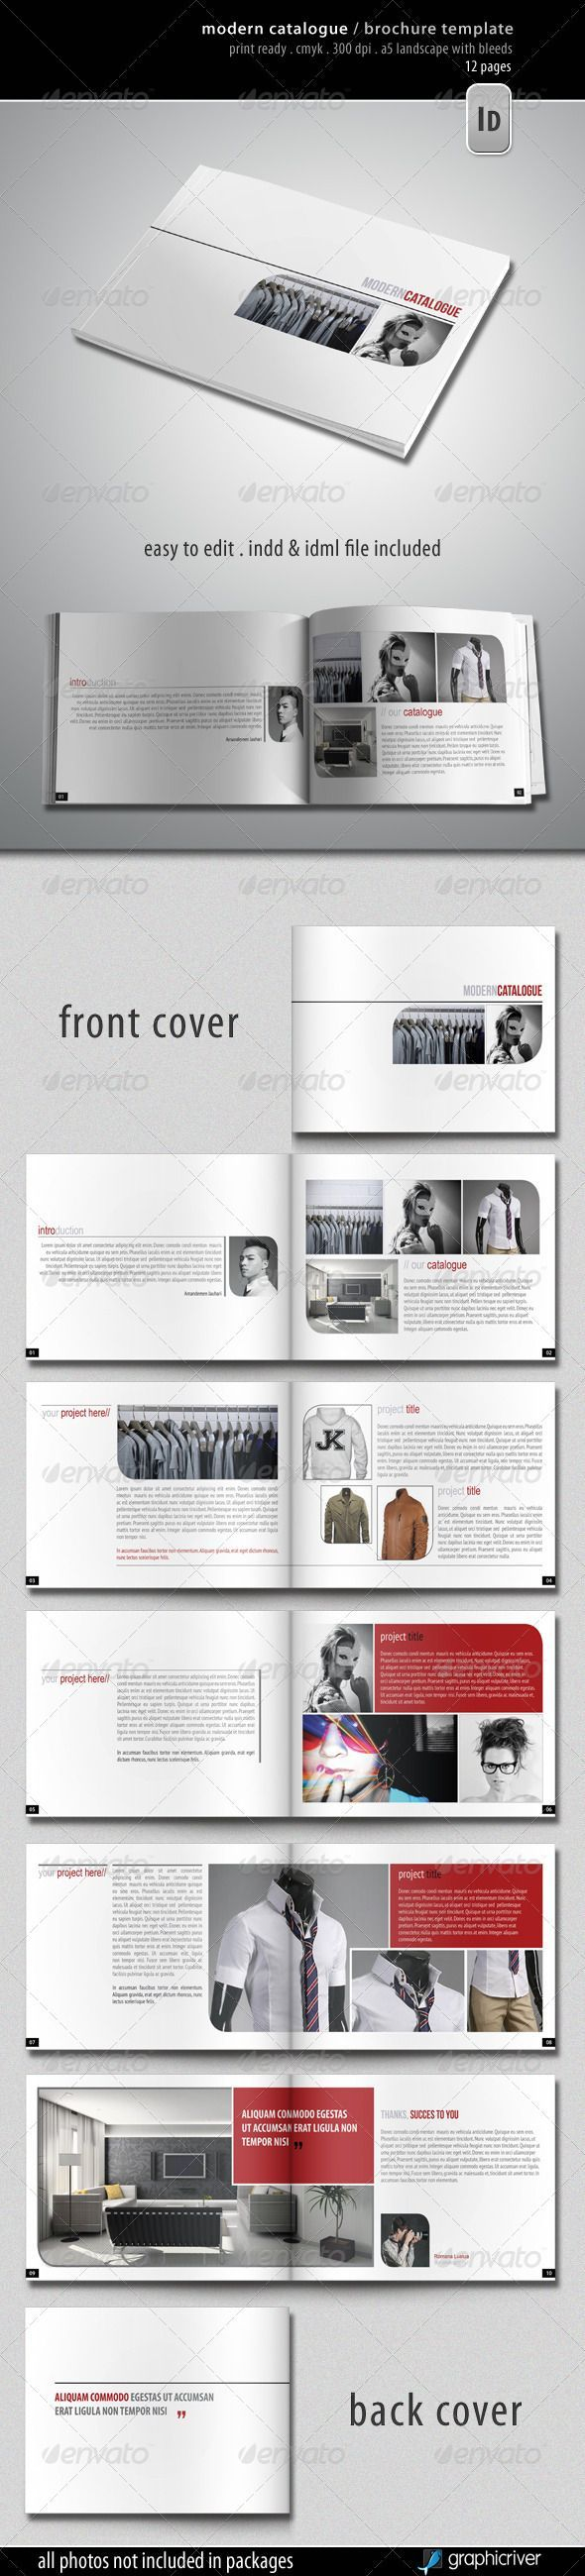 Modern Catalogue Brochure Template Graphicriver Item For Sale